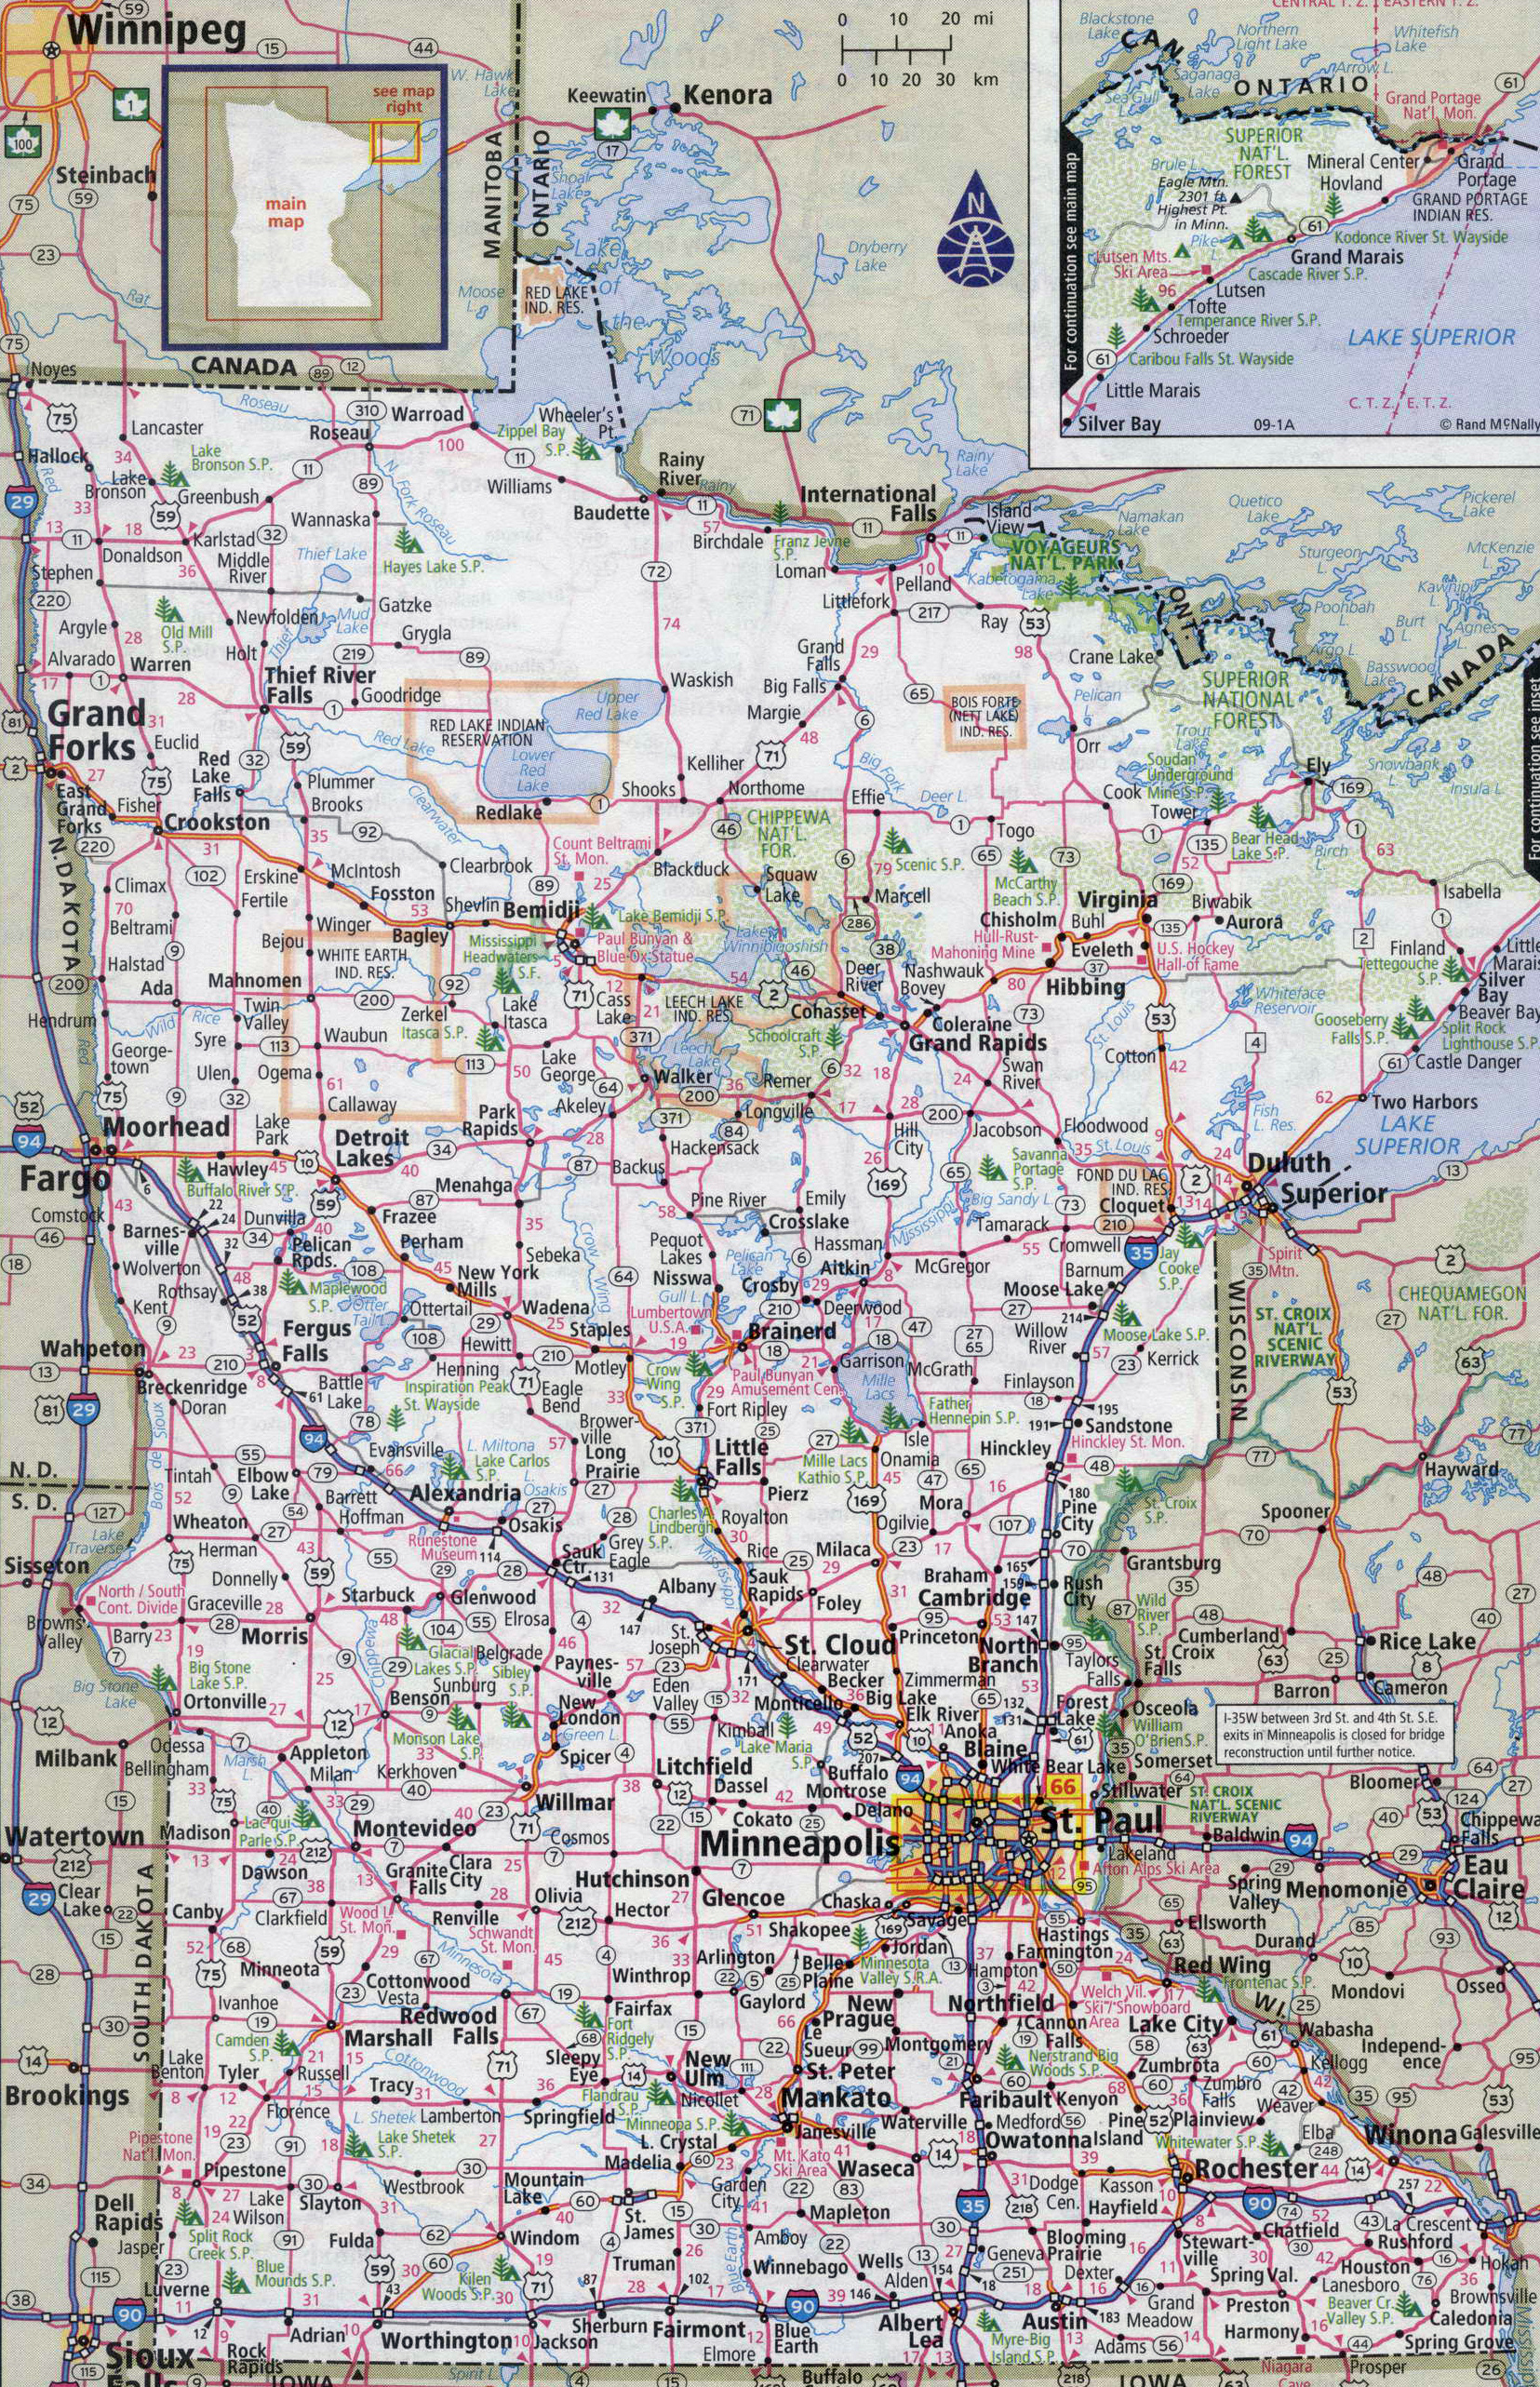 Worksheet. Large detailed roads and highways map of Minnesota state with